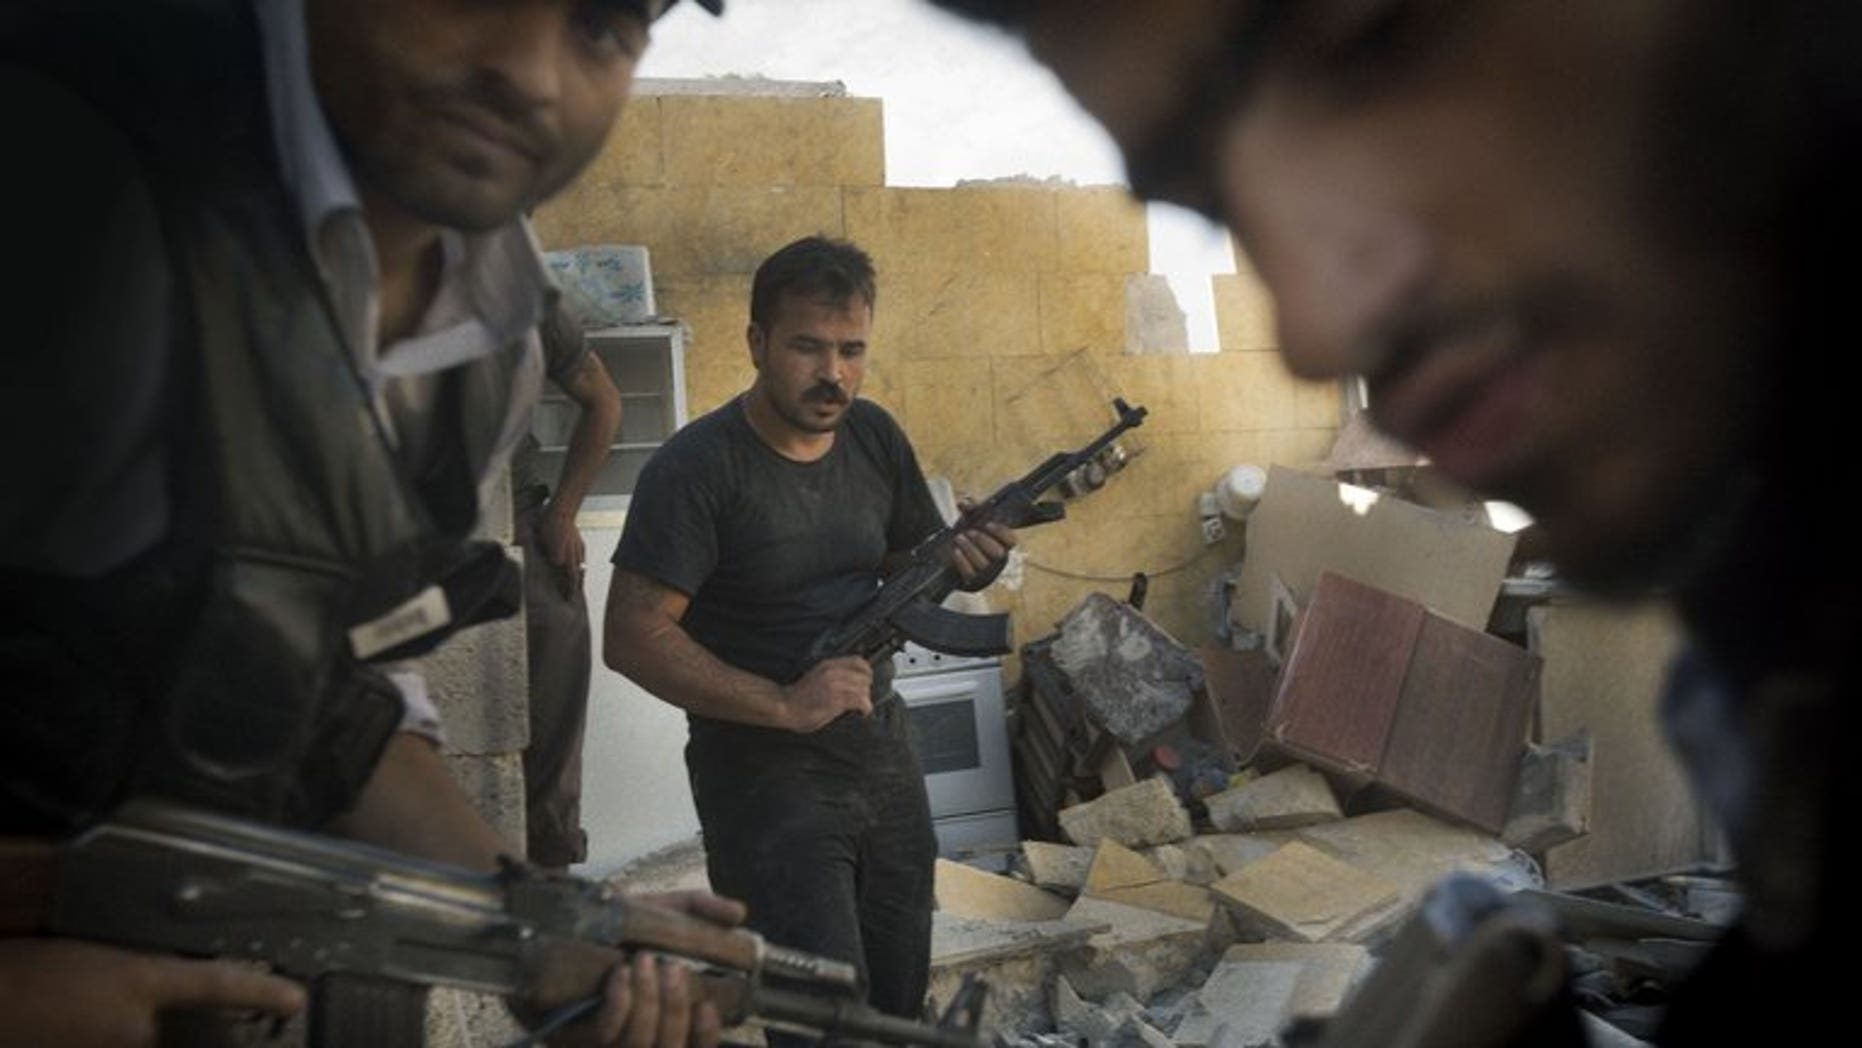 Syrian opposition fighters pictured in the northern city of Aleppo on May 27, 2013. Fierce battles raged on the edges of Damascus Tuesday as the army pressed a major assault to crush rebels around the capital, a monitoring group and activists said.